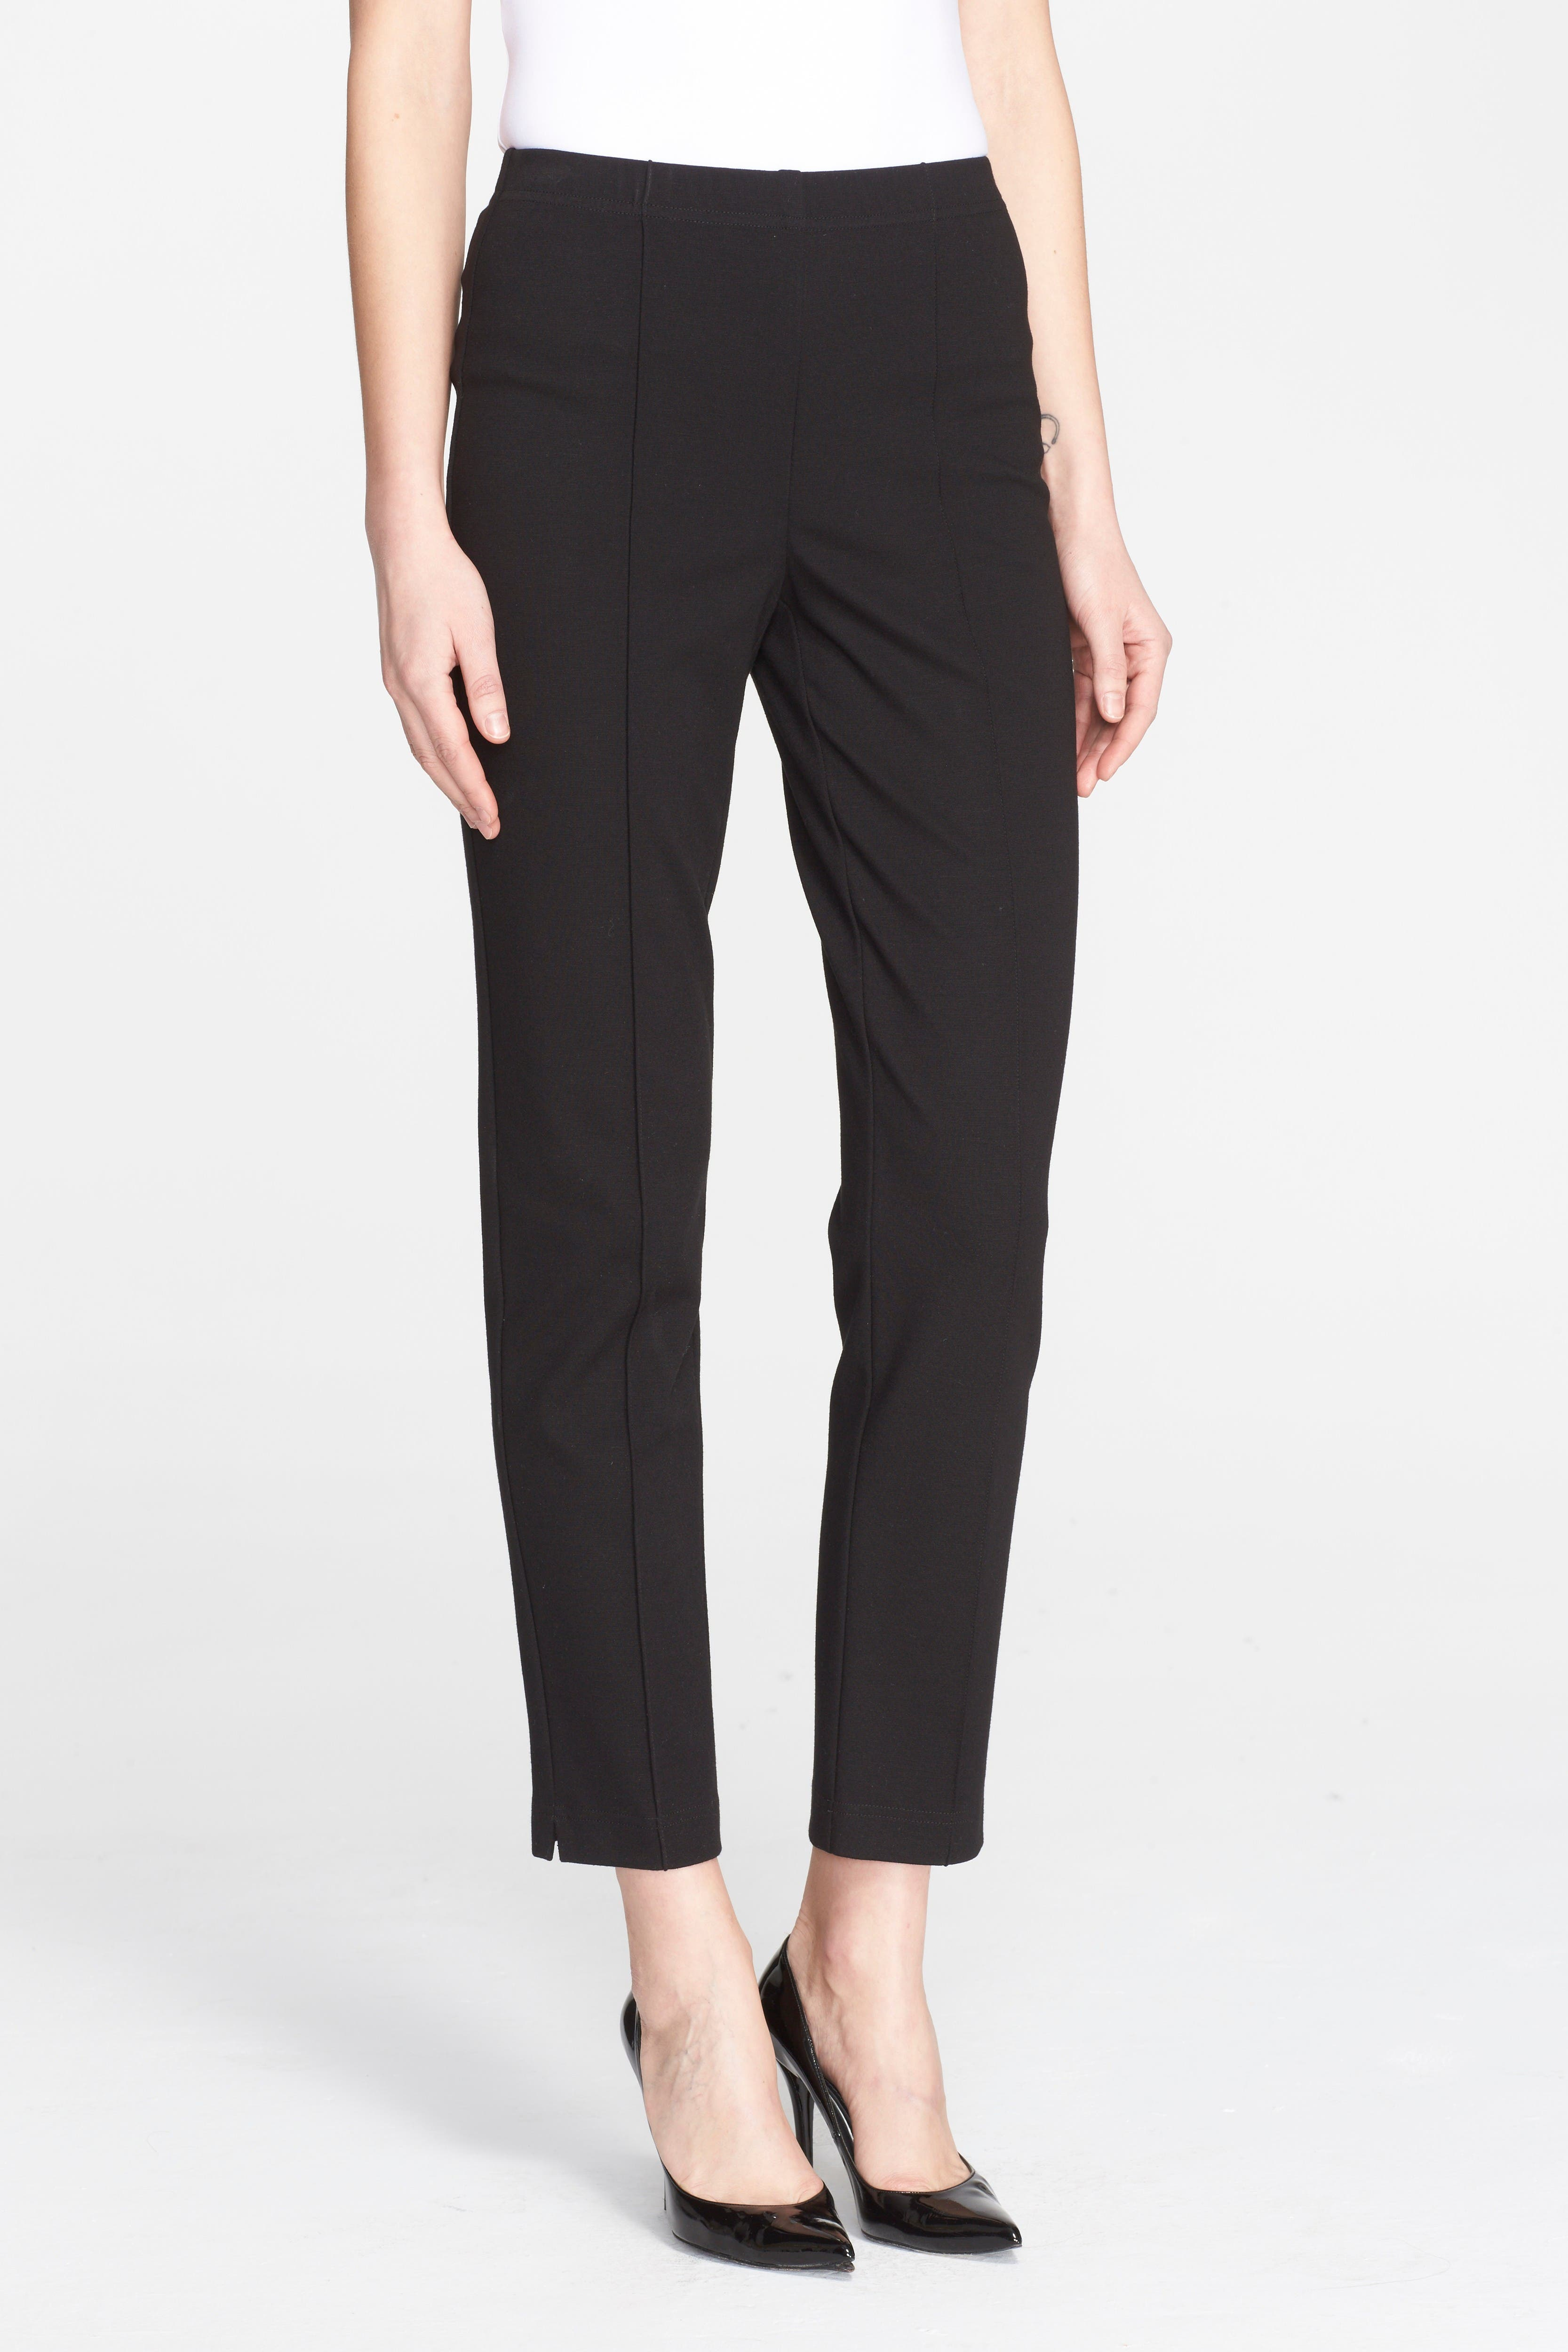 Main Image - St. John Collection Ponte Knit Ankle Pants